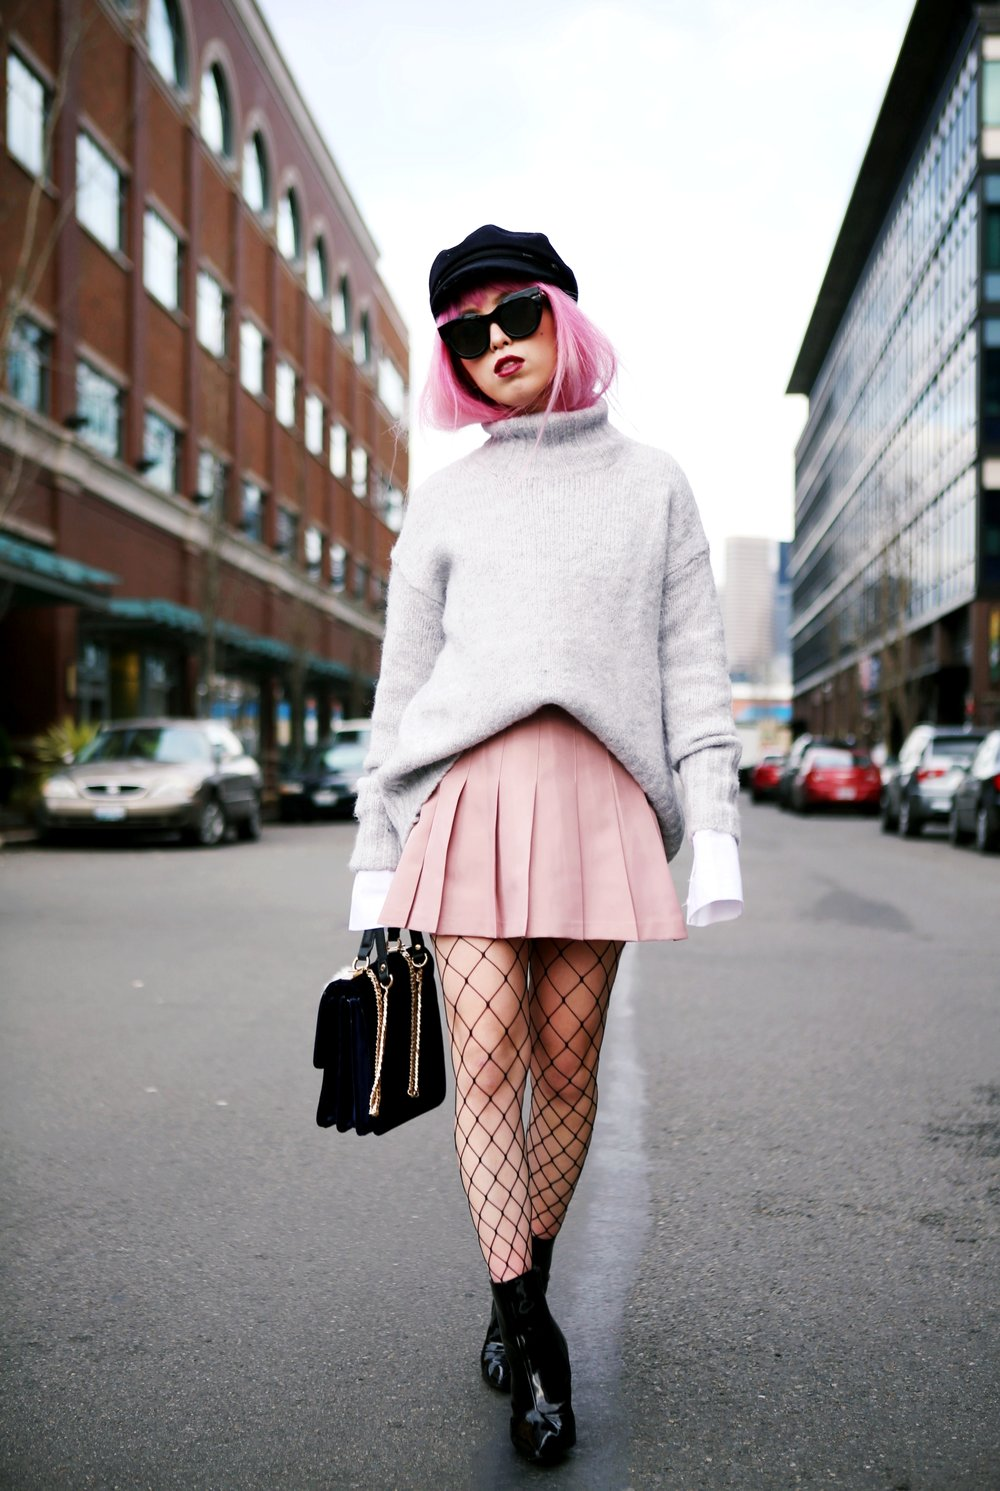 Isabel Marant News Boy Hat-H&M Gray Turtleneck Sweater-H&M Wide cuff Cotton Shirt-Forever 21 Pleated Mini Skirt-Boohoo Wide Fishnet Tights-ZARA Velvet Bag-ALDO Patent Booties-Le Specs Air Heart Sunglasses-Milani Black Cherry Lipstick-Aikas Love Closet-Seattle Style Lifestyle Blogger-japanese-pink hair 2